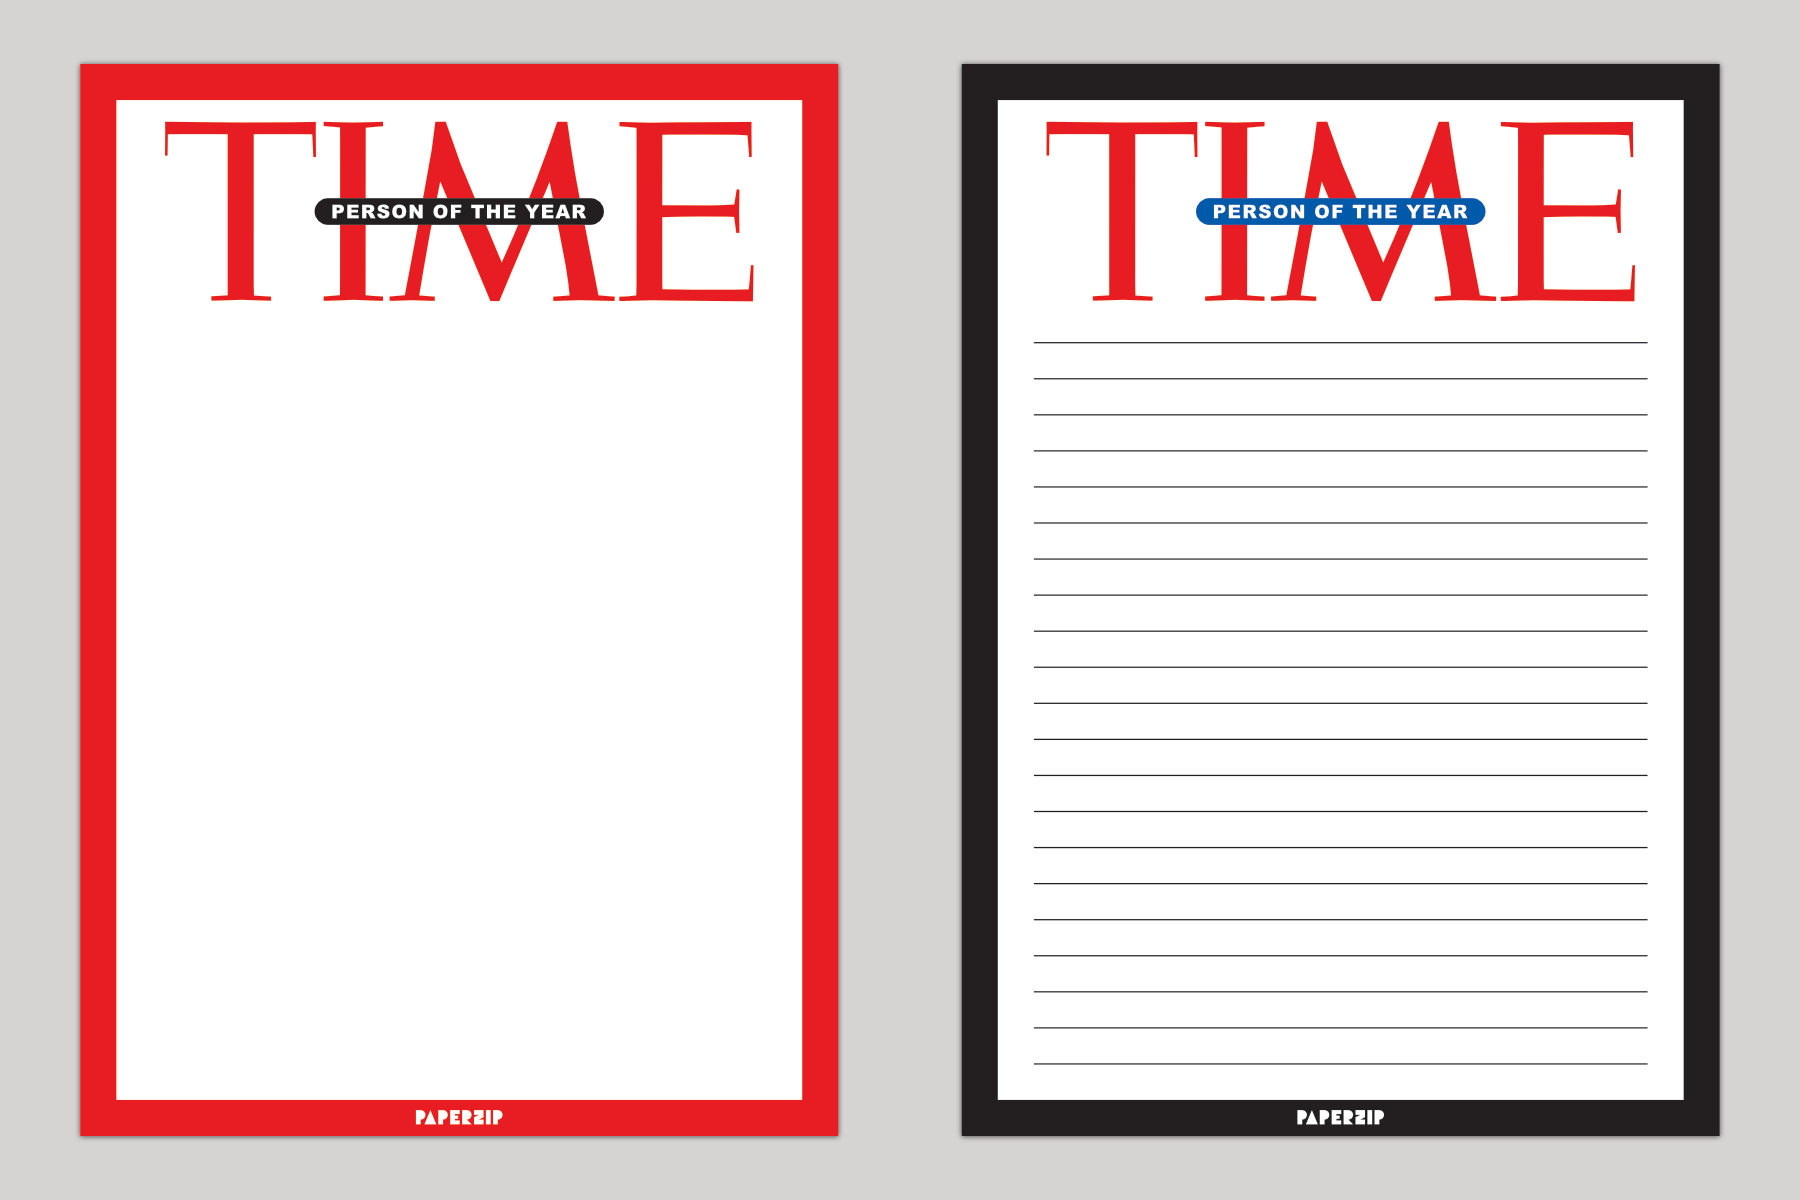 Time magazine person of the year templates paperzip for Time magazine person of the year cover template